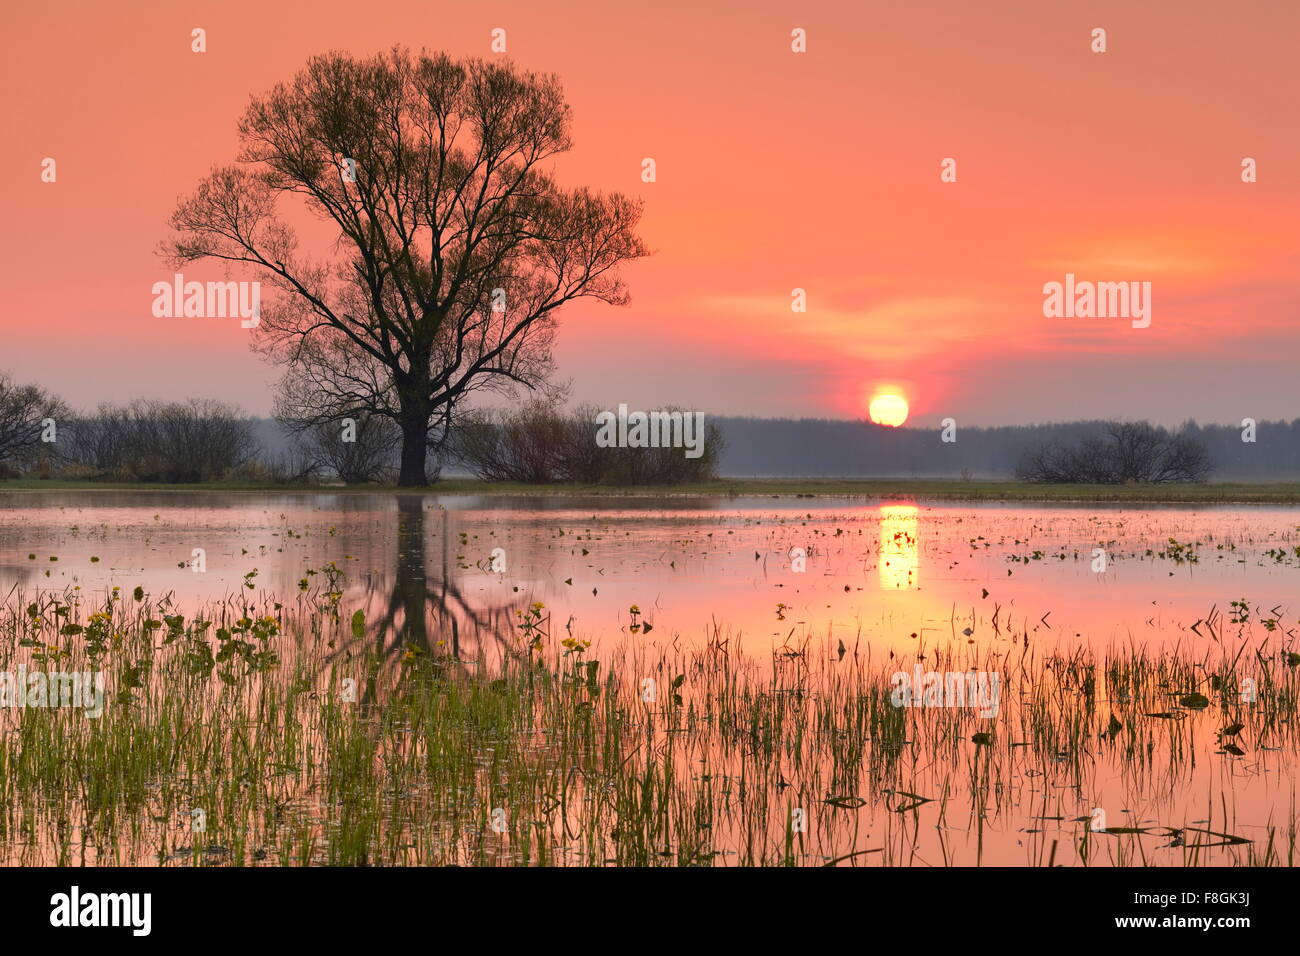 Sunrise Landschaft, Nationalpark Biebrza-Flusstal, Polen Stockbild